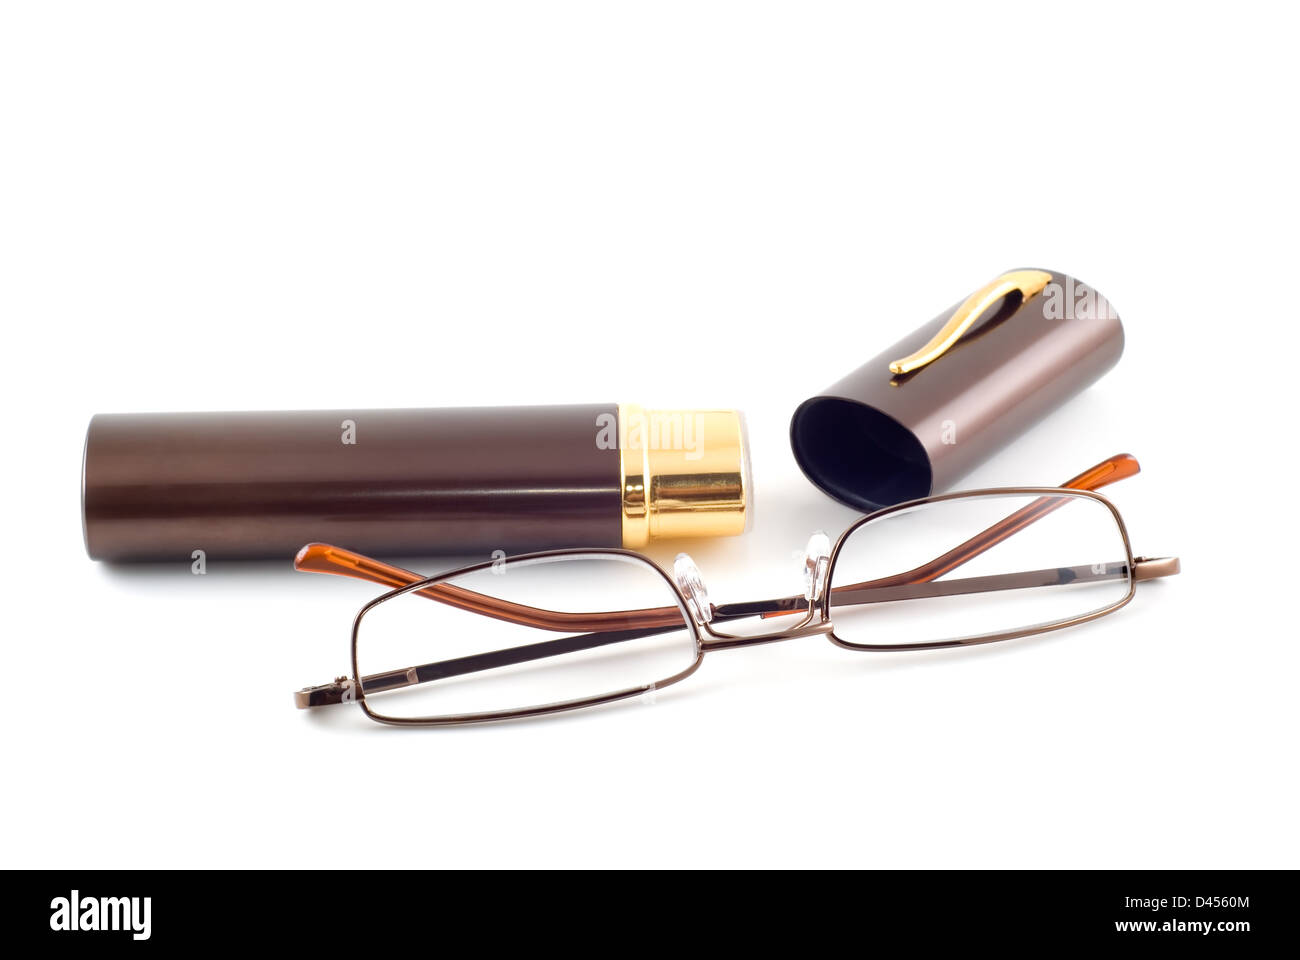 Spectacles and spectacle-case are photographed close-up on the white background - Stock Image